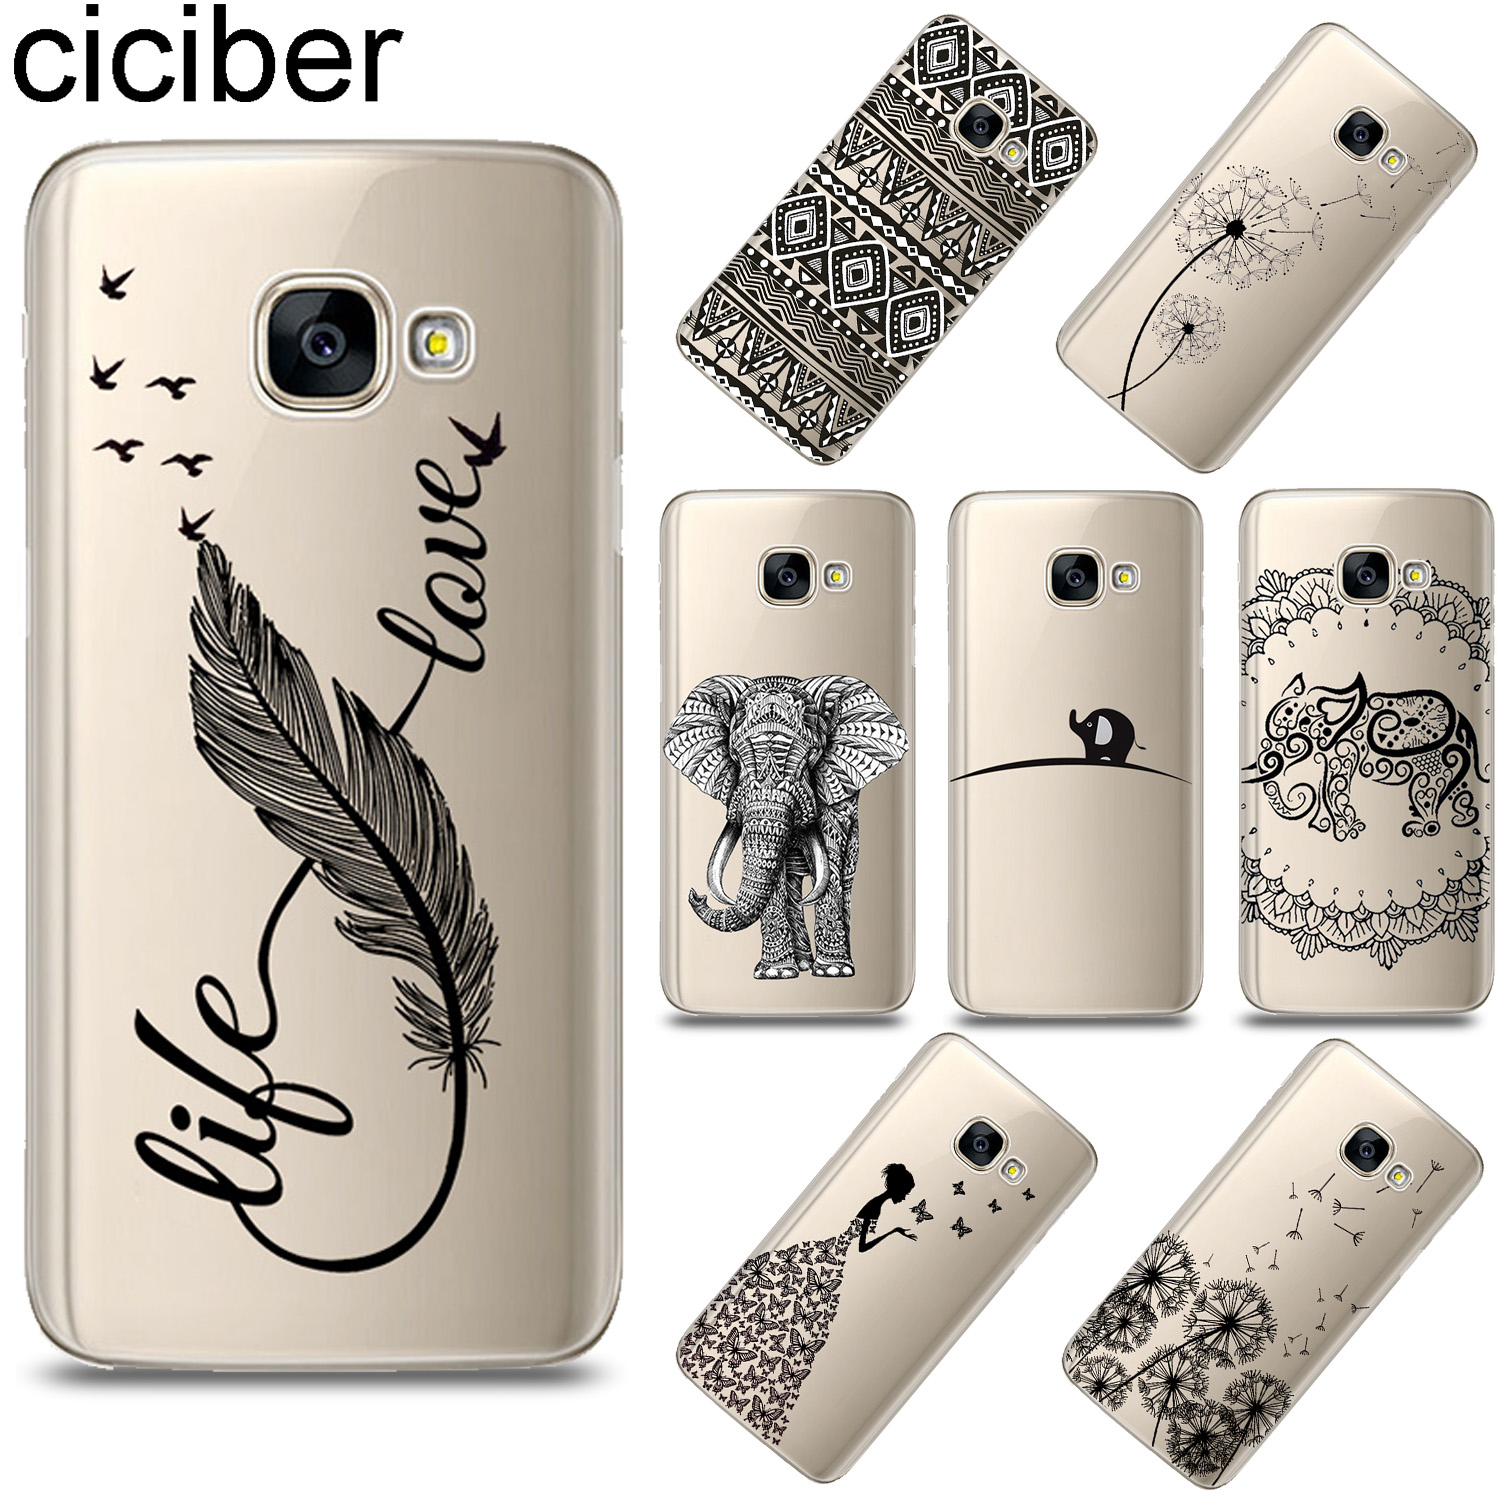 ciciber Totem Animal Feather For <font><b>Samsung</b></font> <font><b>Galaxy</b></font> A8 A9 2018 PRO A6 A8 Plus 2018 A5 2016 <font><b>A3</b></font> A7 <font><b>2017</b></font> Soft TPU <font><b>Phone</b></font> <font><b>Case</b></font> Funda Capa image